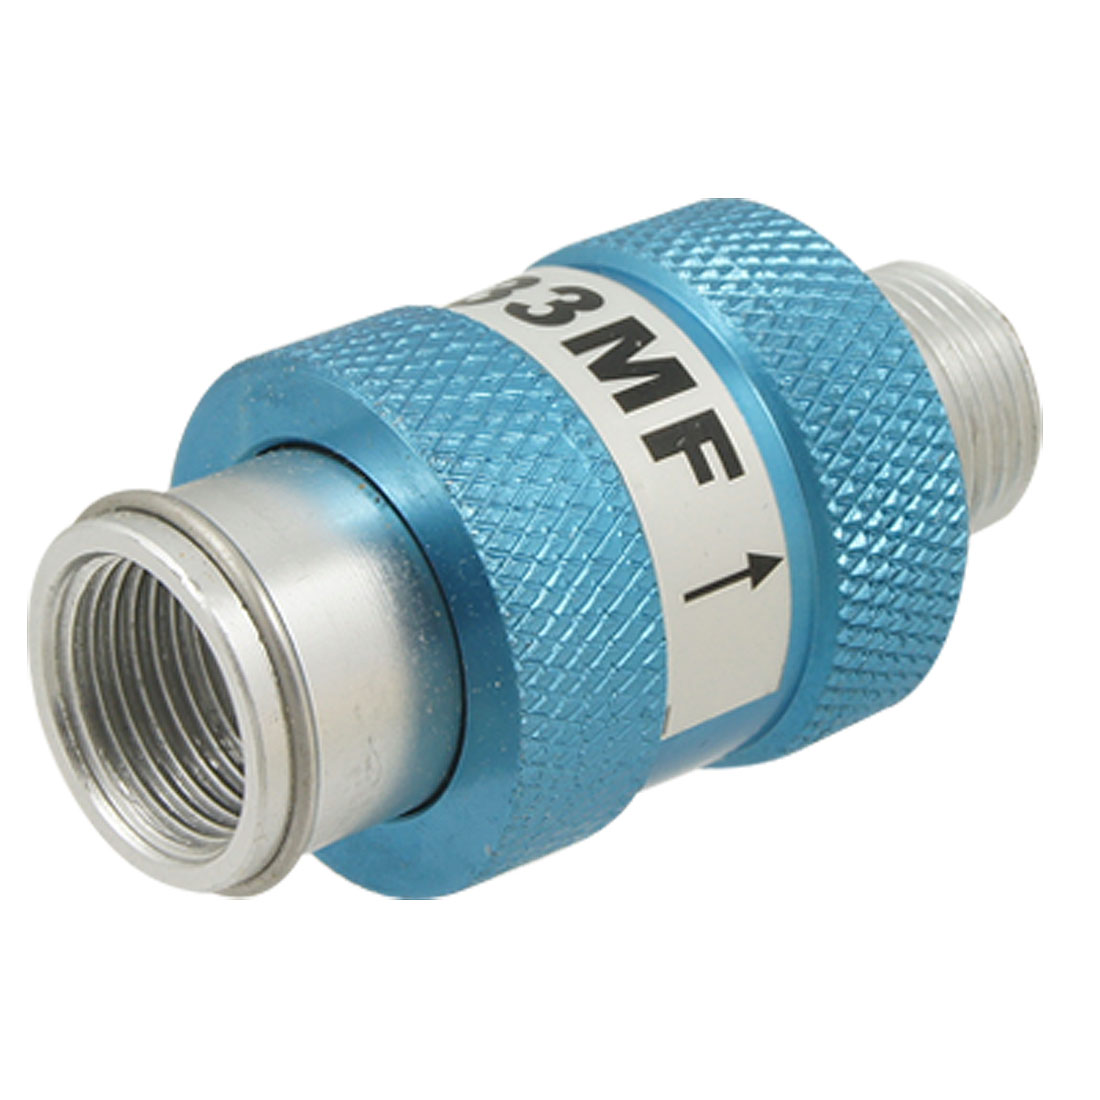 MS-33 MF 16mm Thread Aluminum Pneumatic Hand Slide Valve